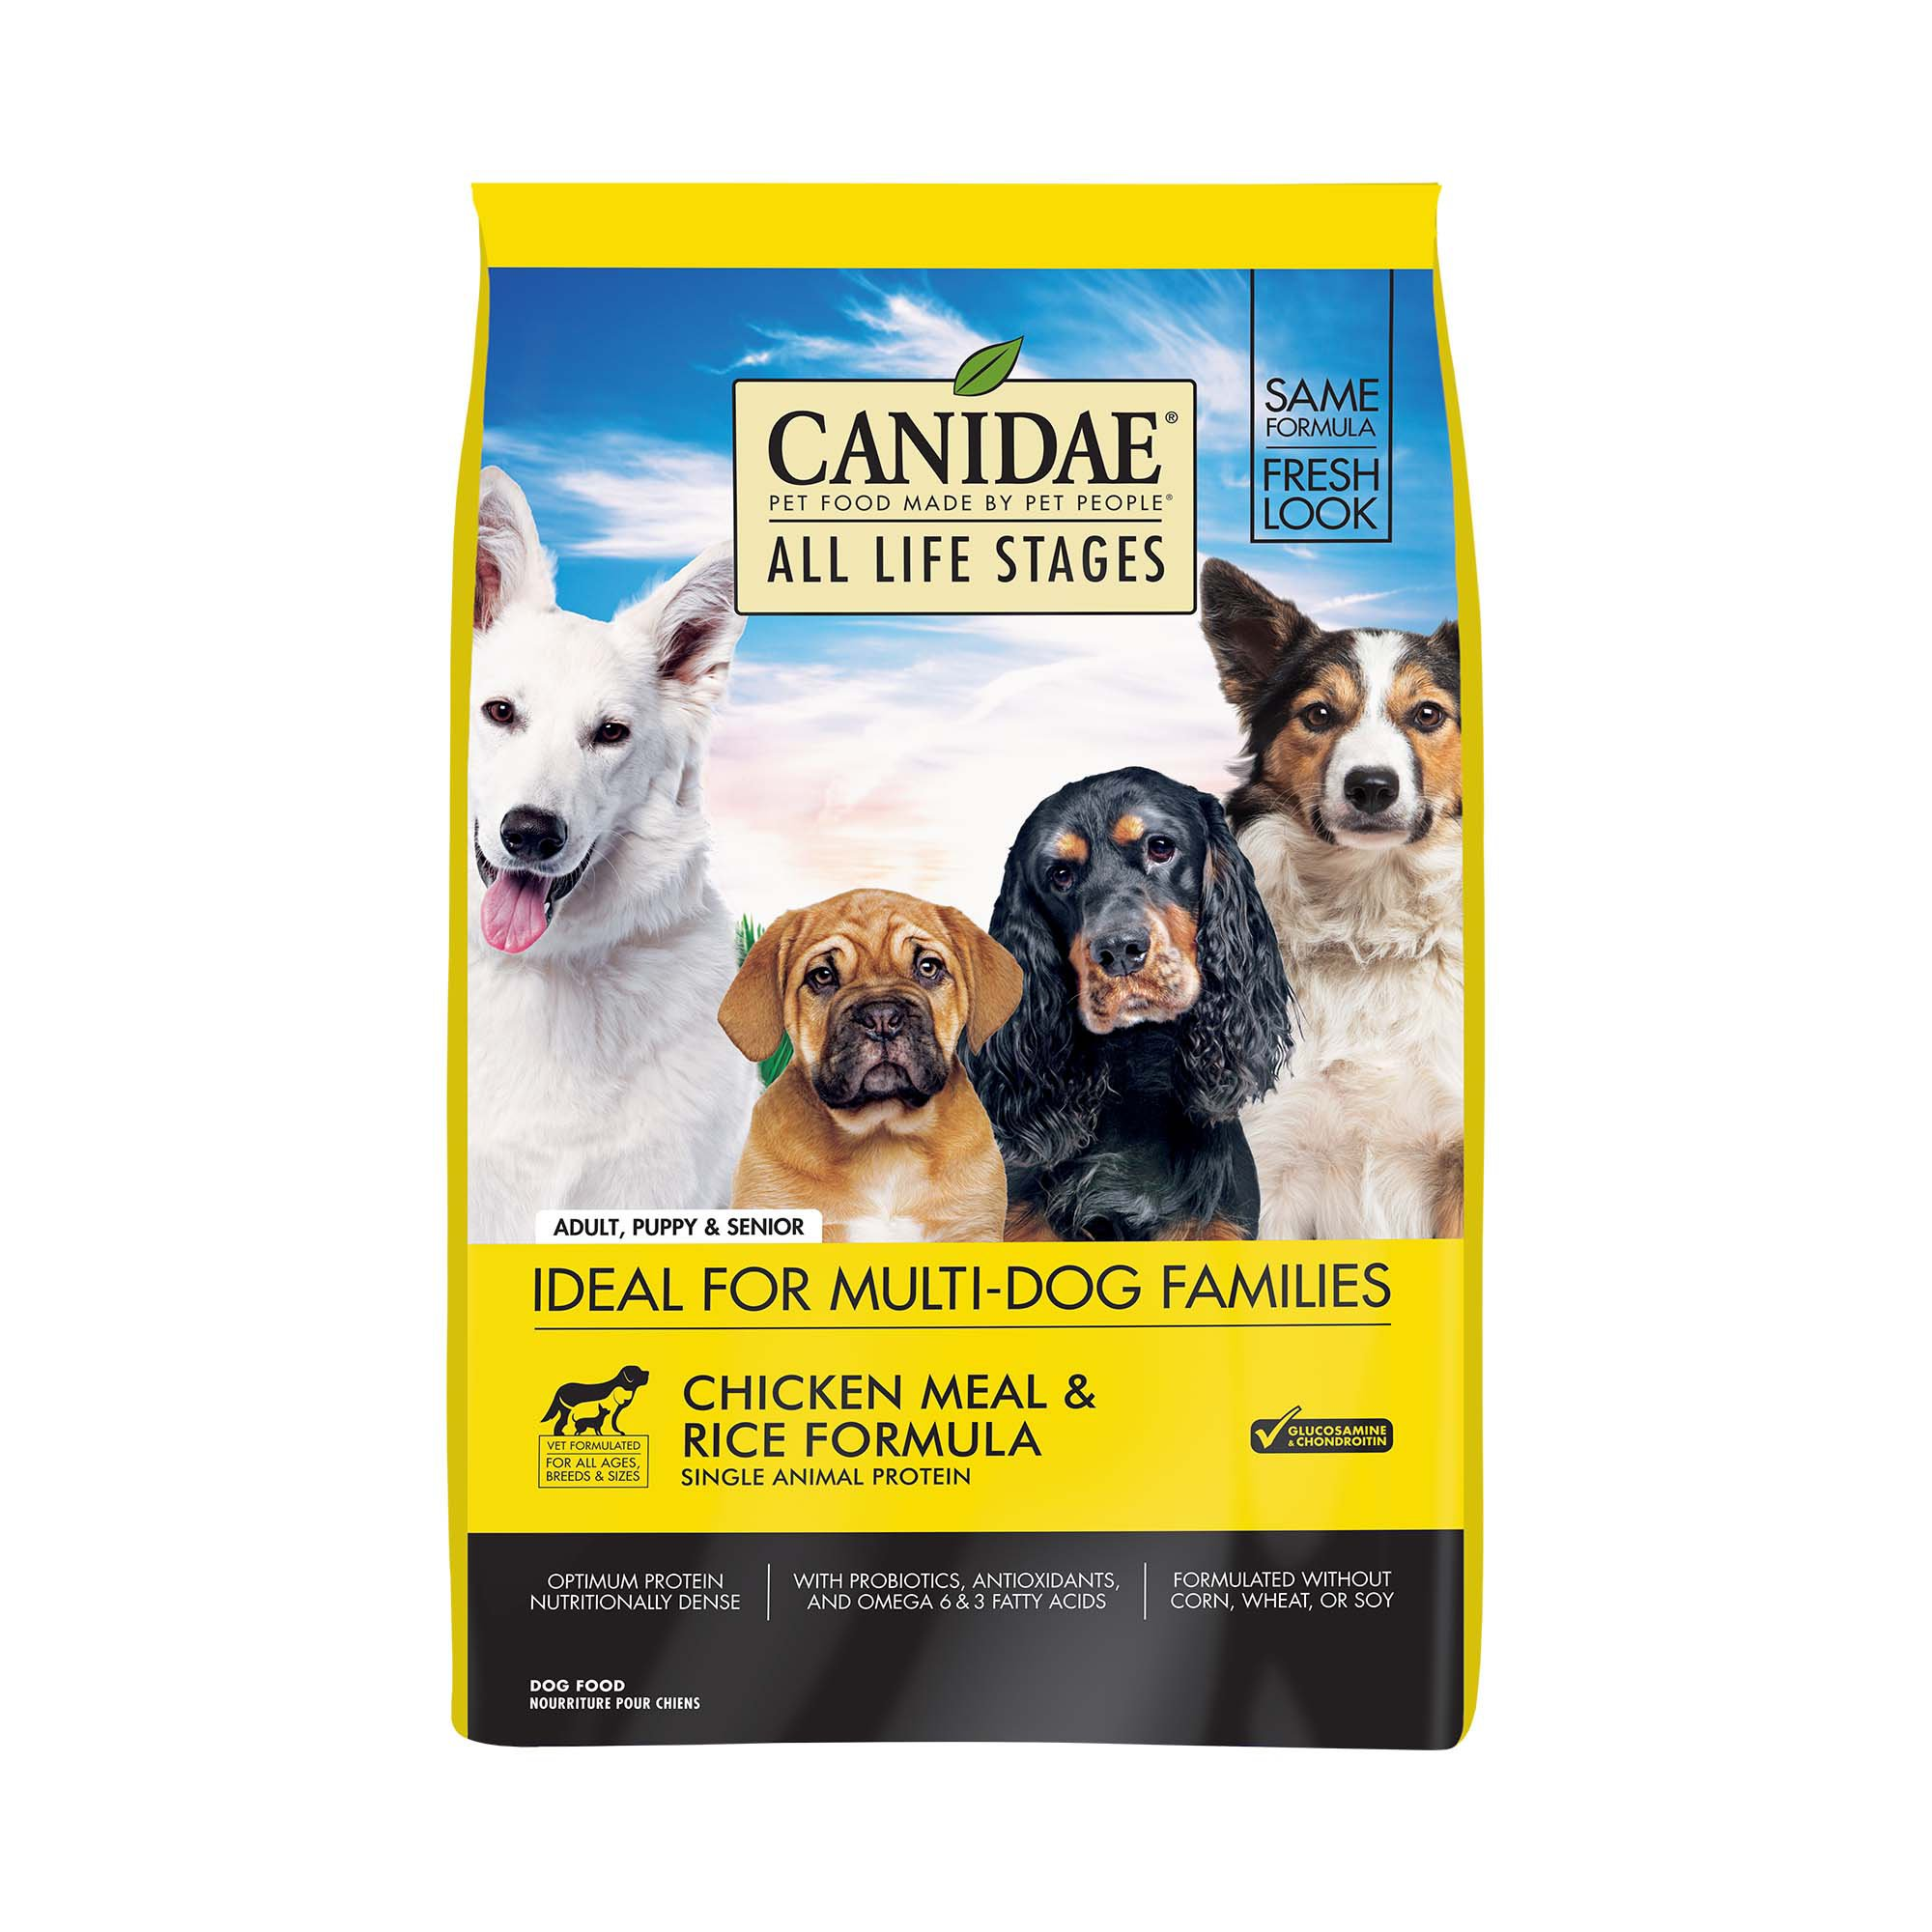 CANIDAE All Life Stages Chicken Meal & Rice Formula Dry Dog Food, 5 lbs.